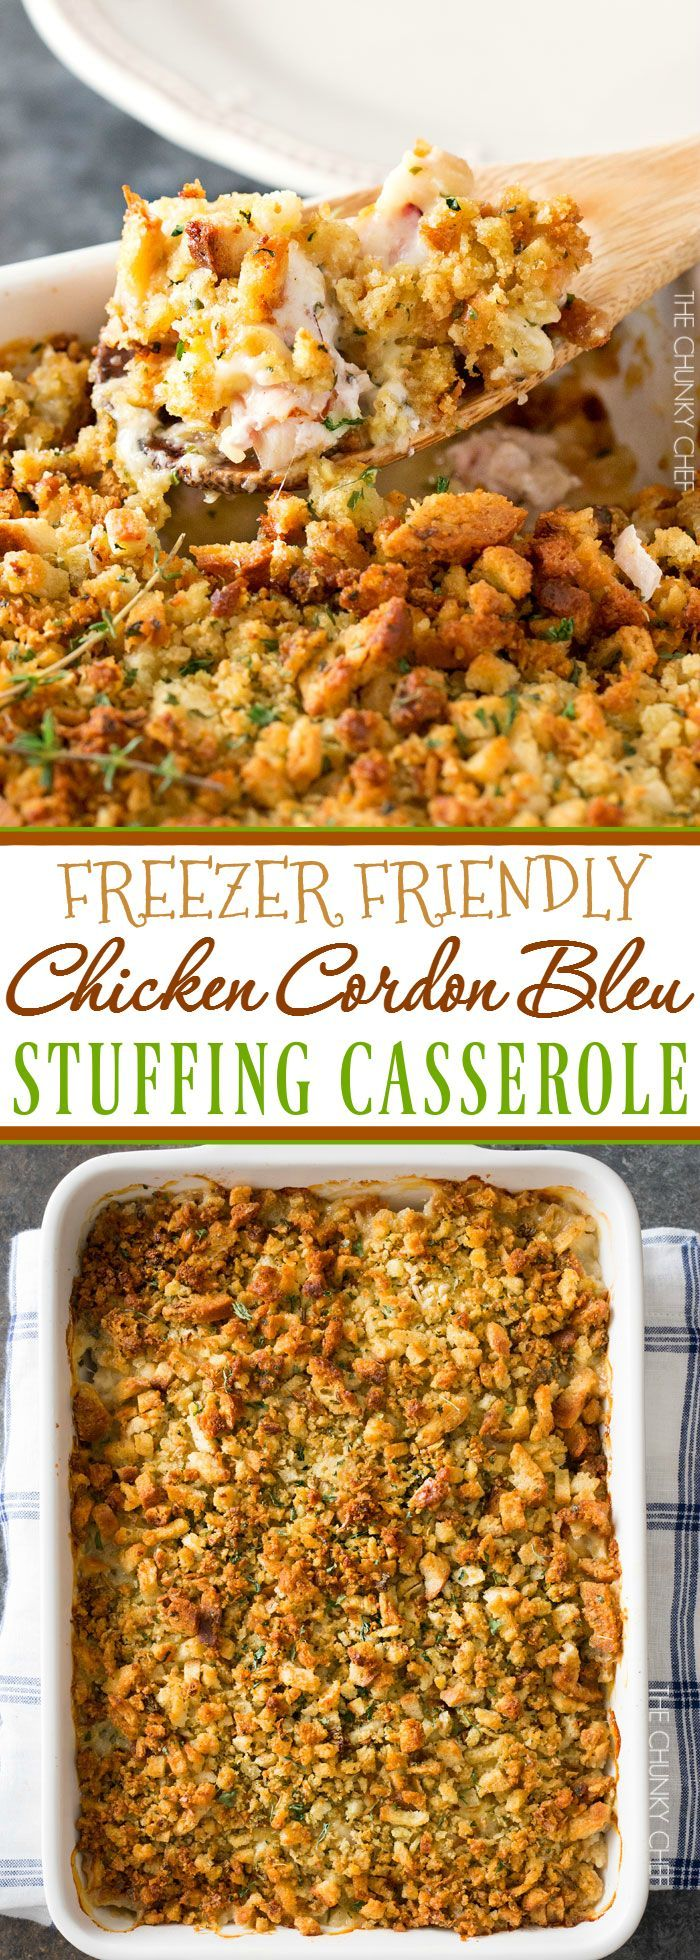 Chicken Cordon Bleu Casserole | A one pan family style casserole full of chicken, ham, swiss cheese, creamy herb sauce and savory stuffing! | http://thechunkychef.com